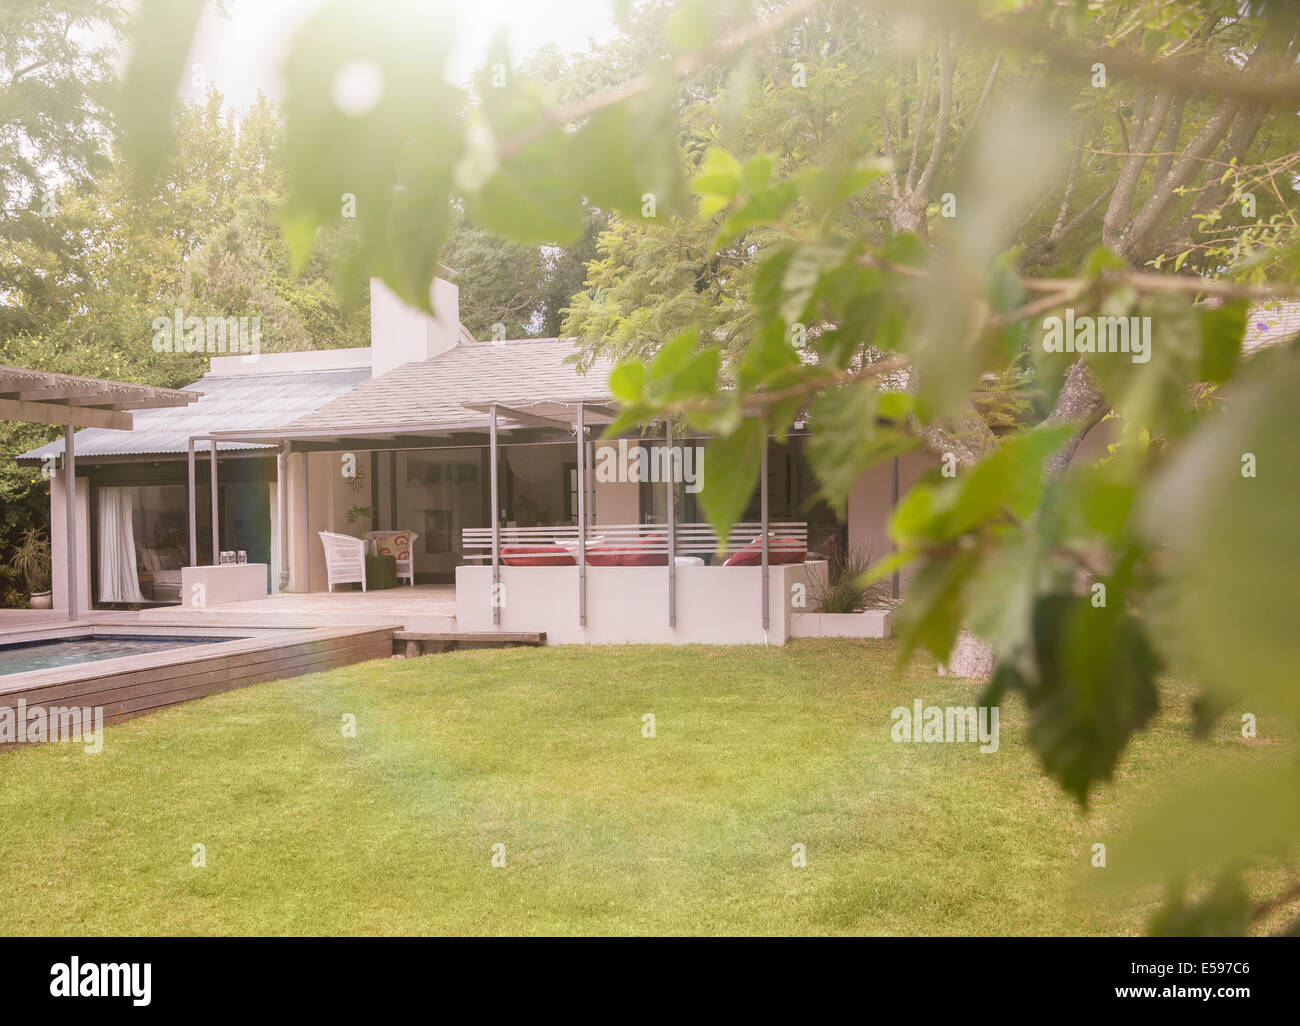 Pool and lawn in backyard of modern house Stock Photo